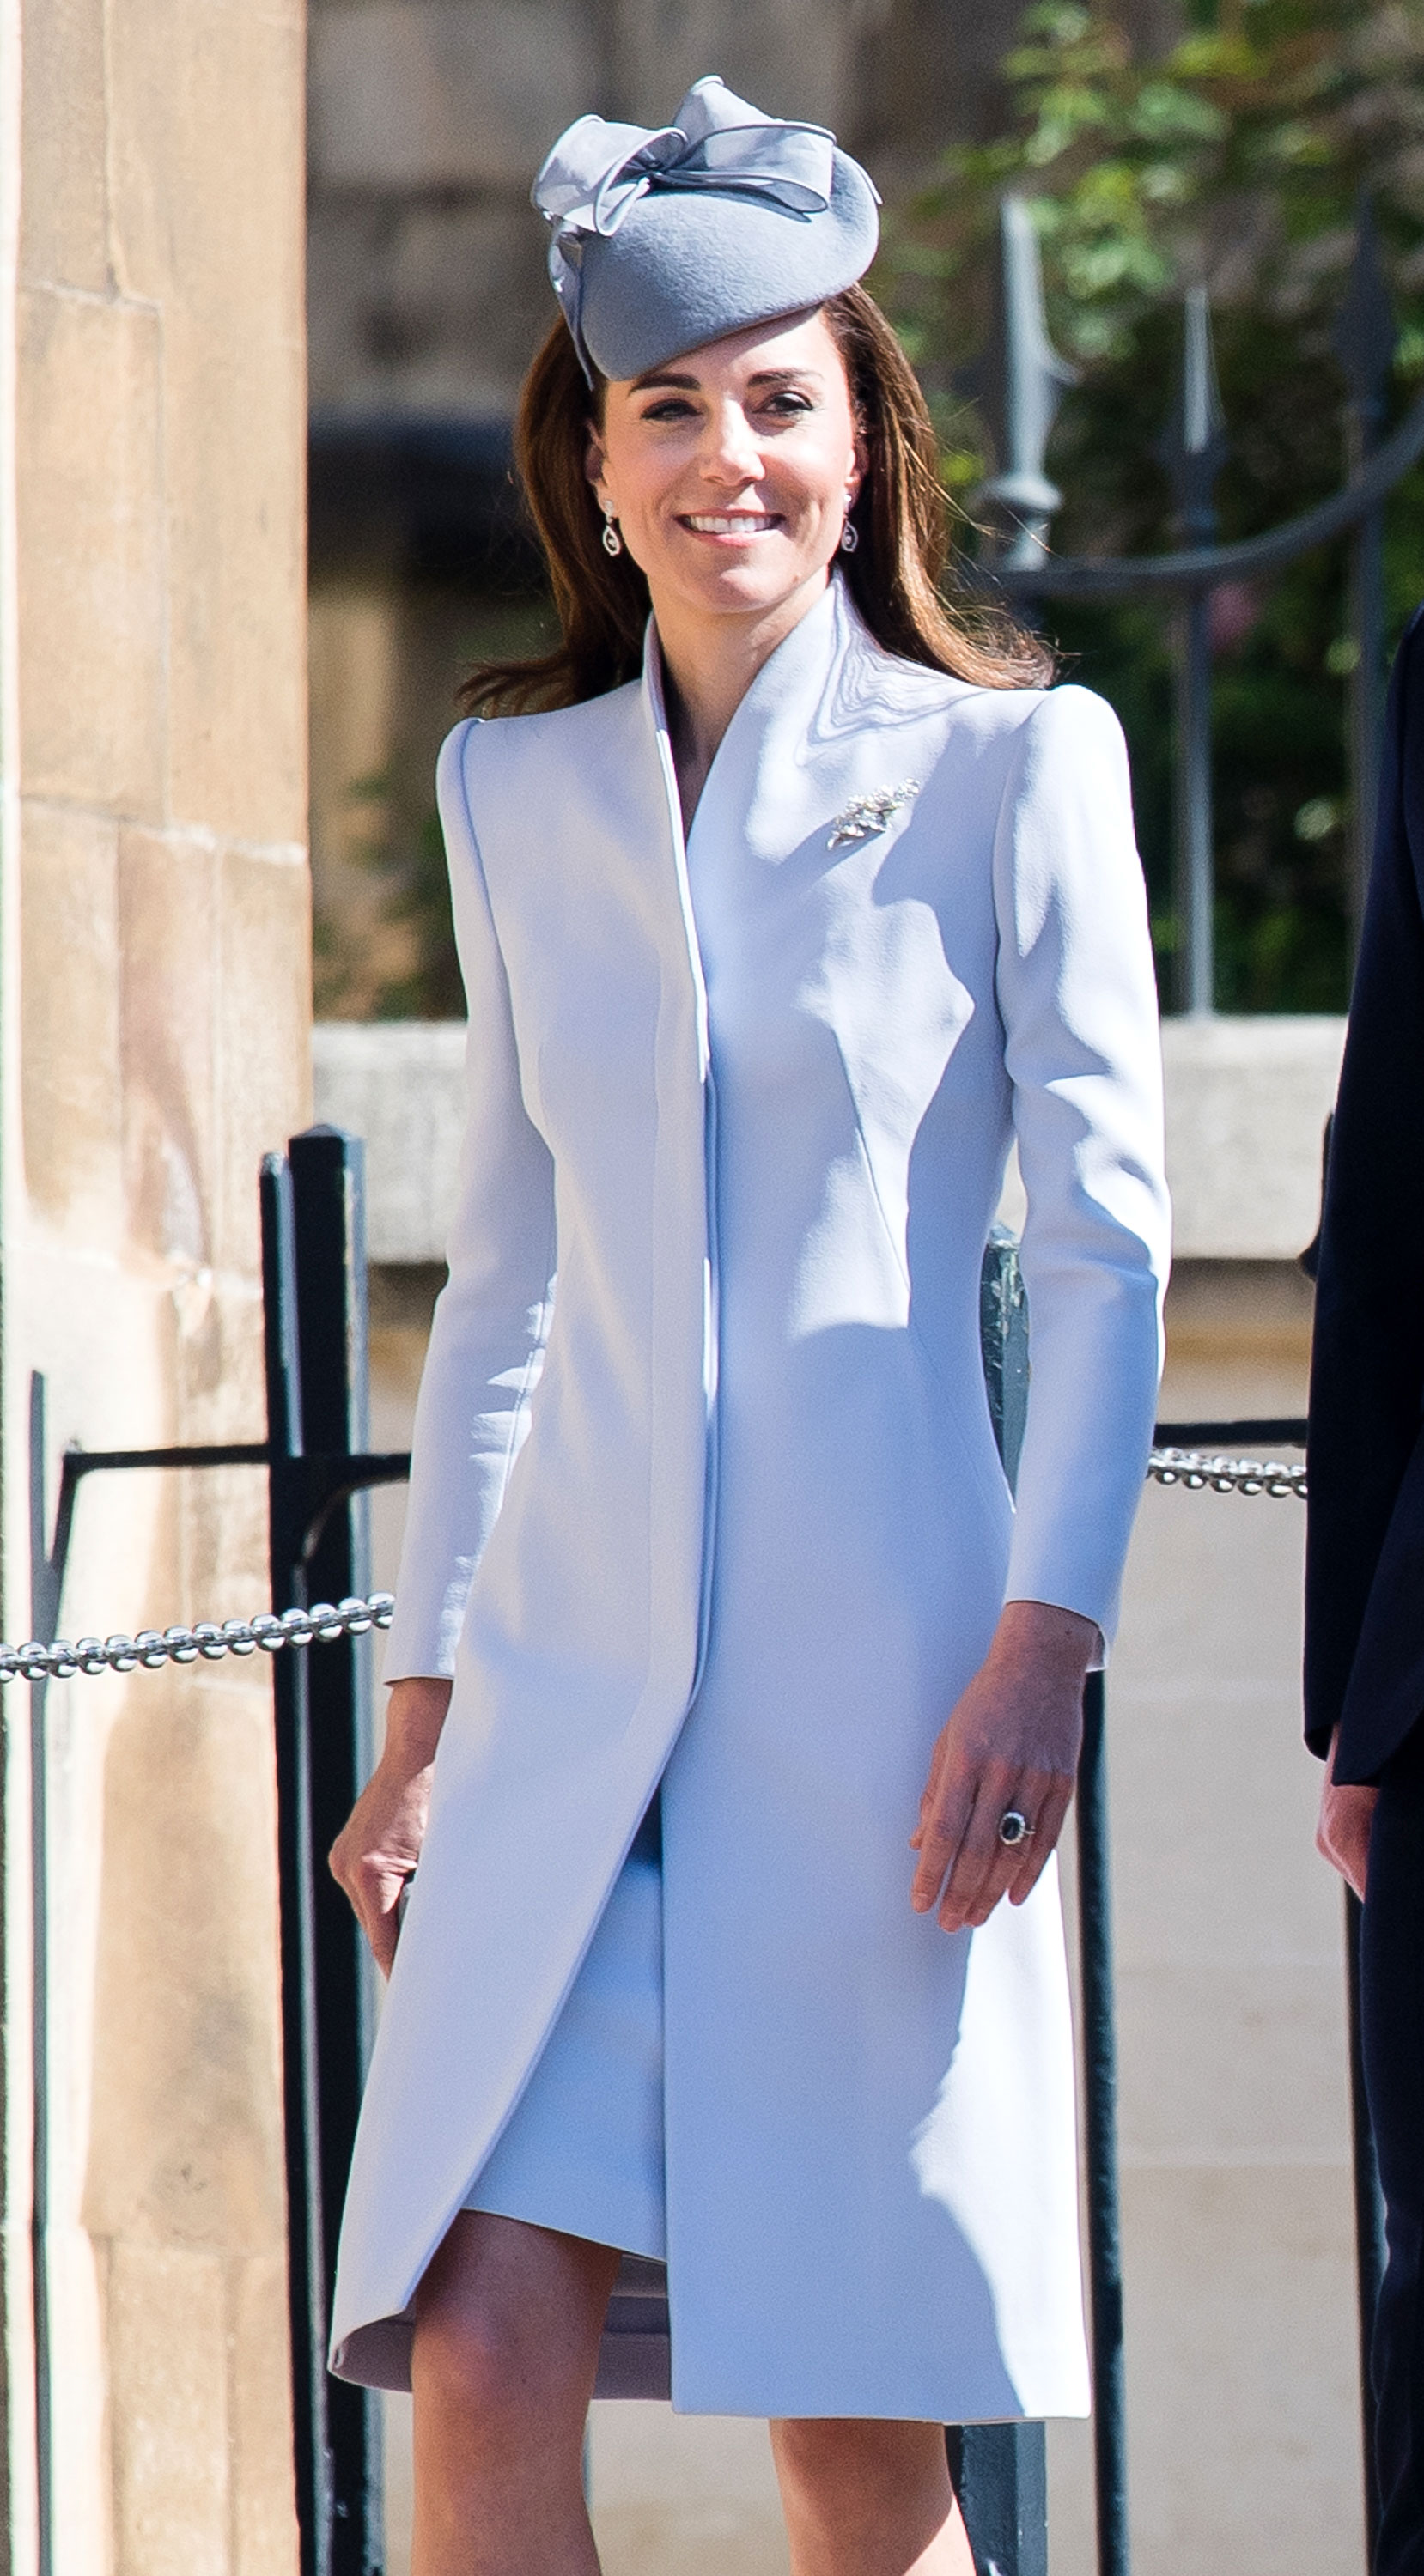 Kate Middleton Royal Family Celebrate Easter - The sun was shining bright as the royal family strolled into St George's Chapel.